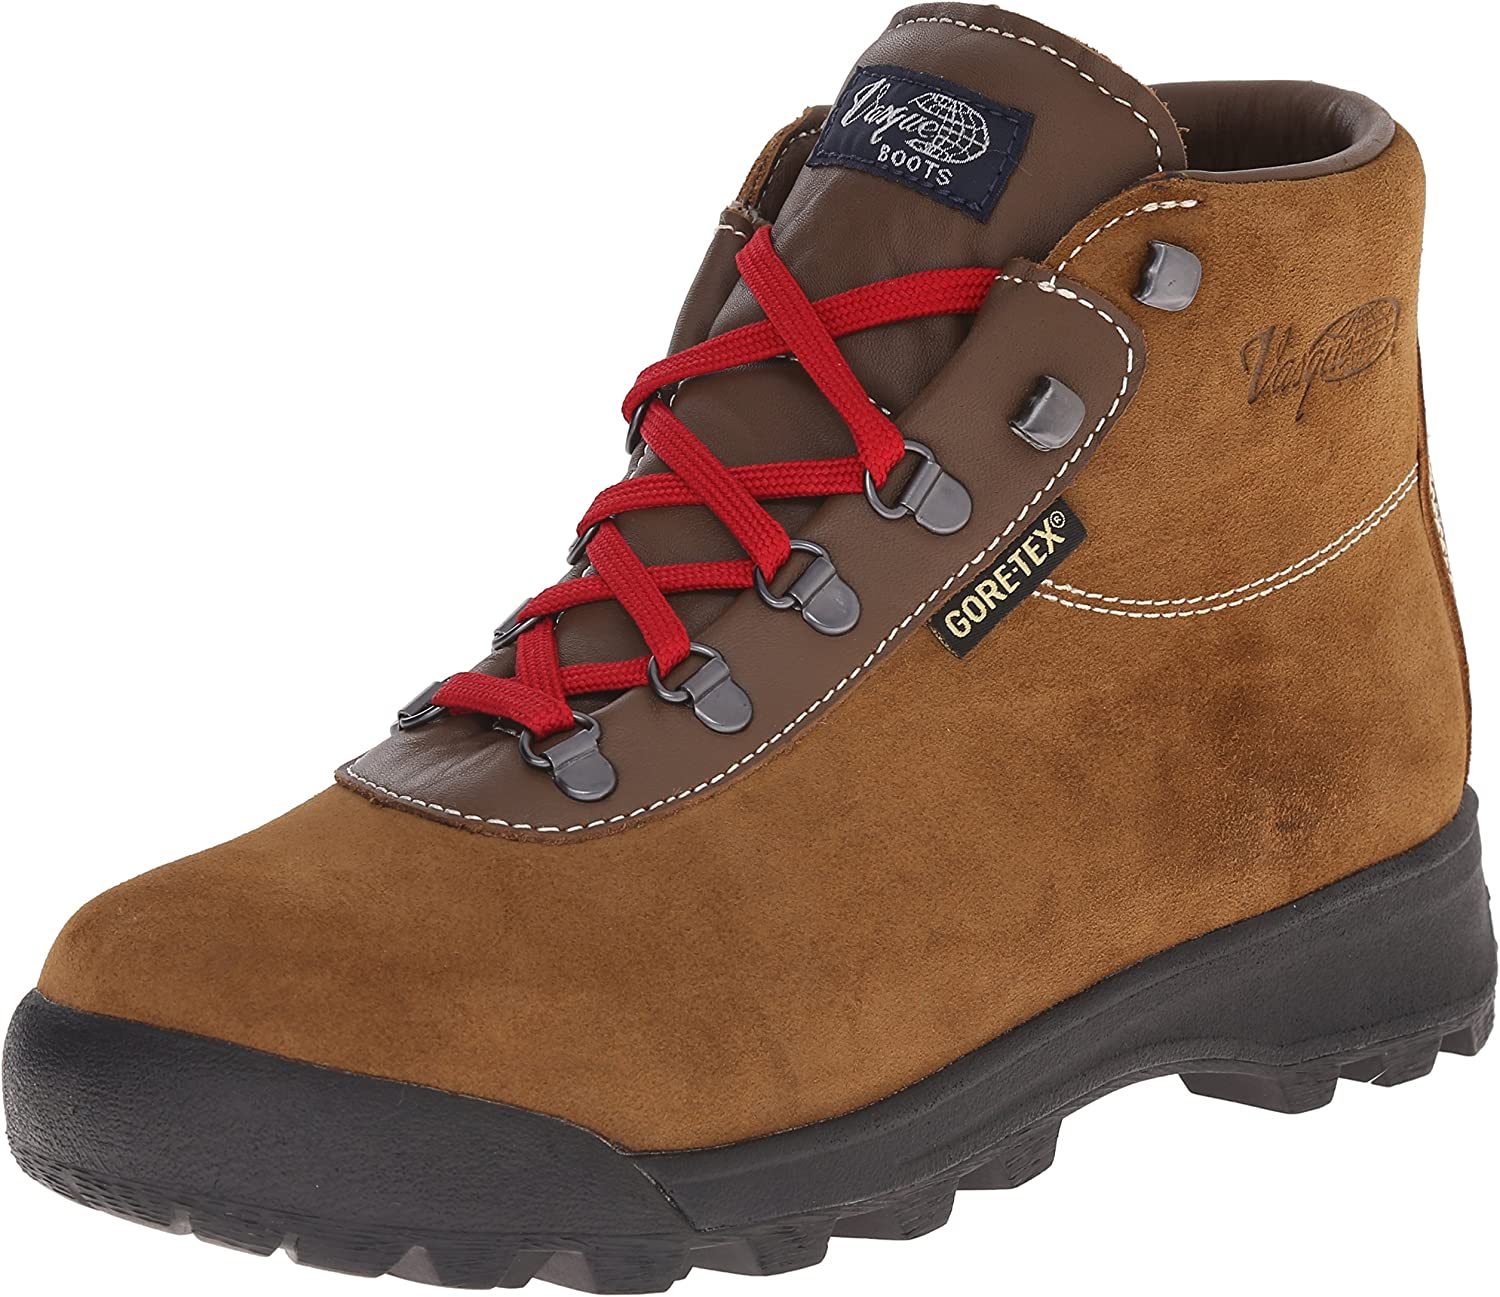 Vasque Men s Sundowner Gore-Tex Backpacking Boot, Hawthorne,8 M US